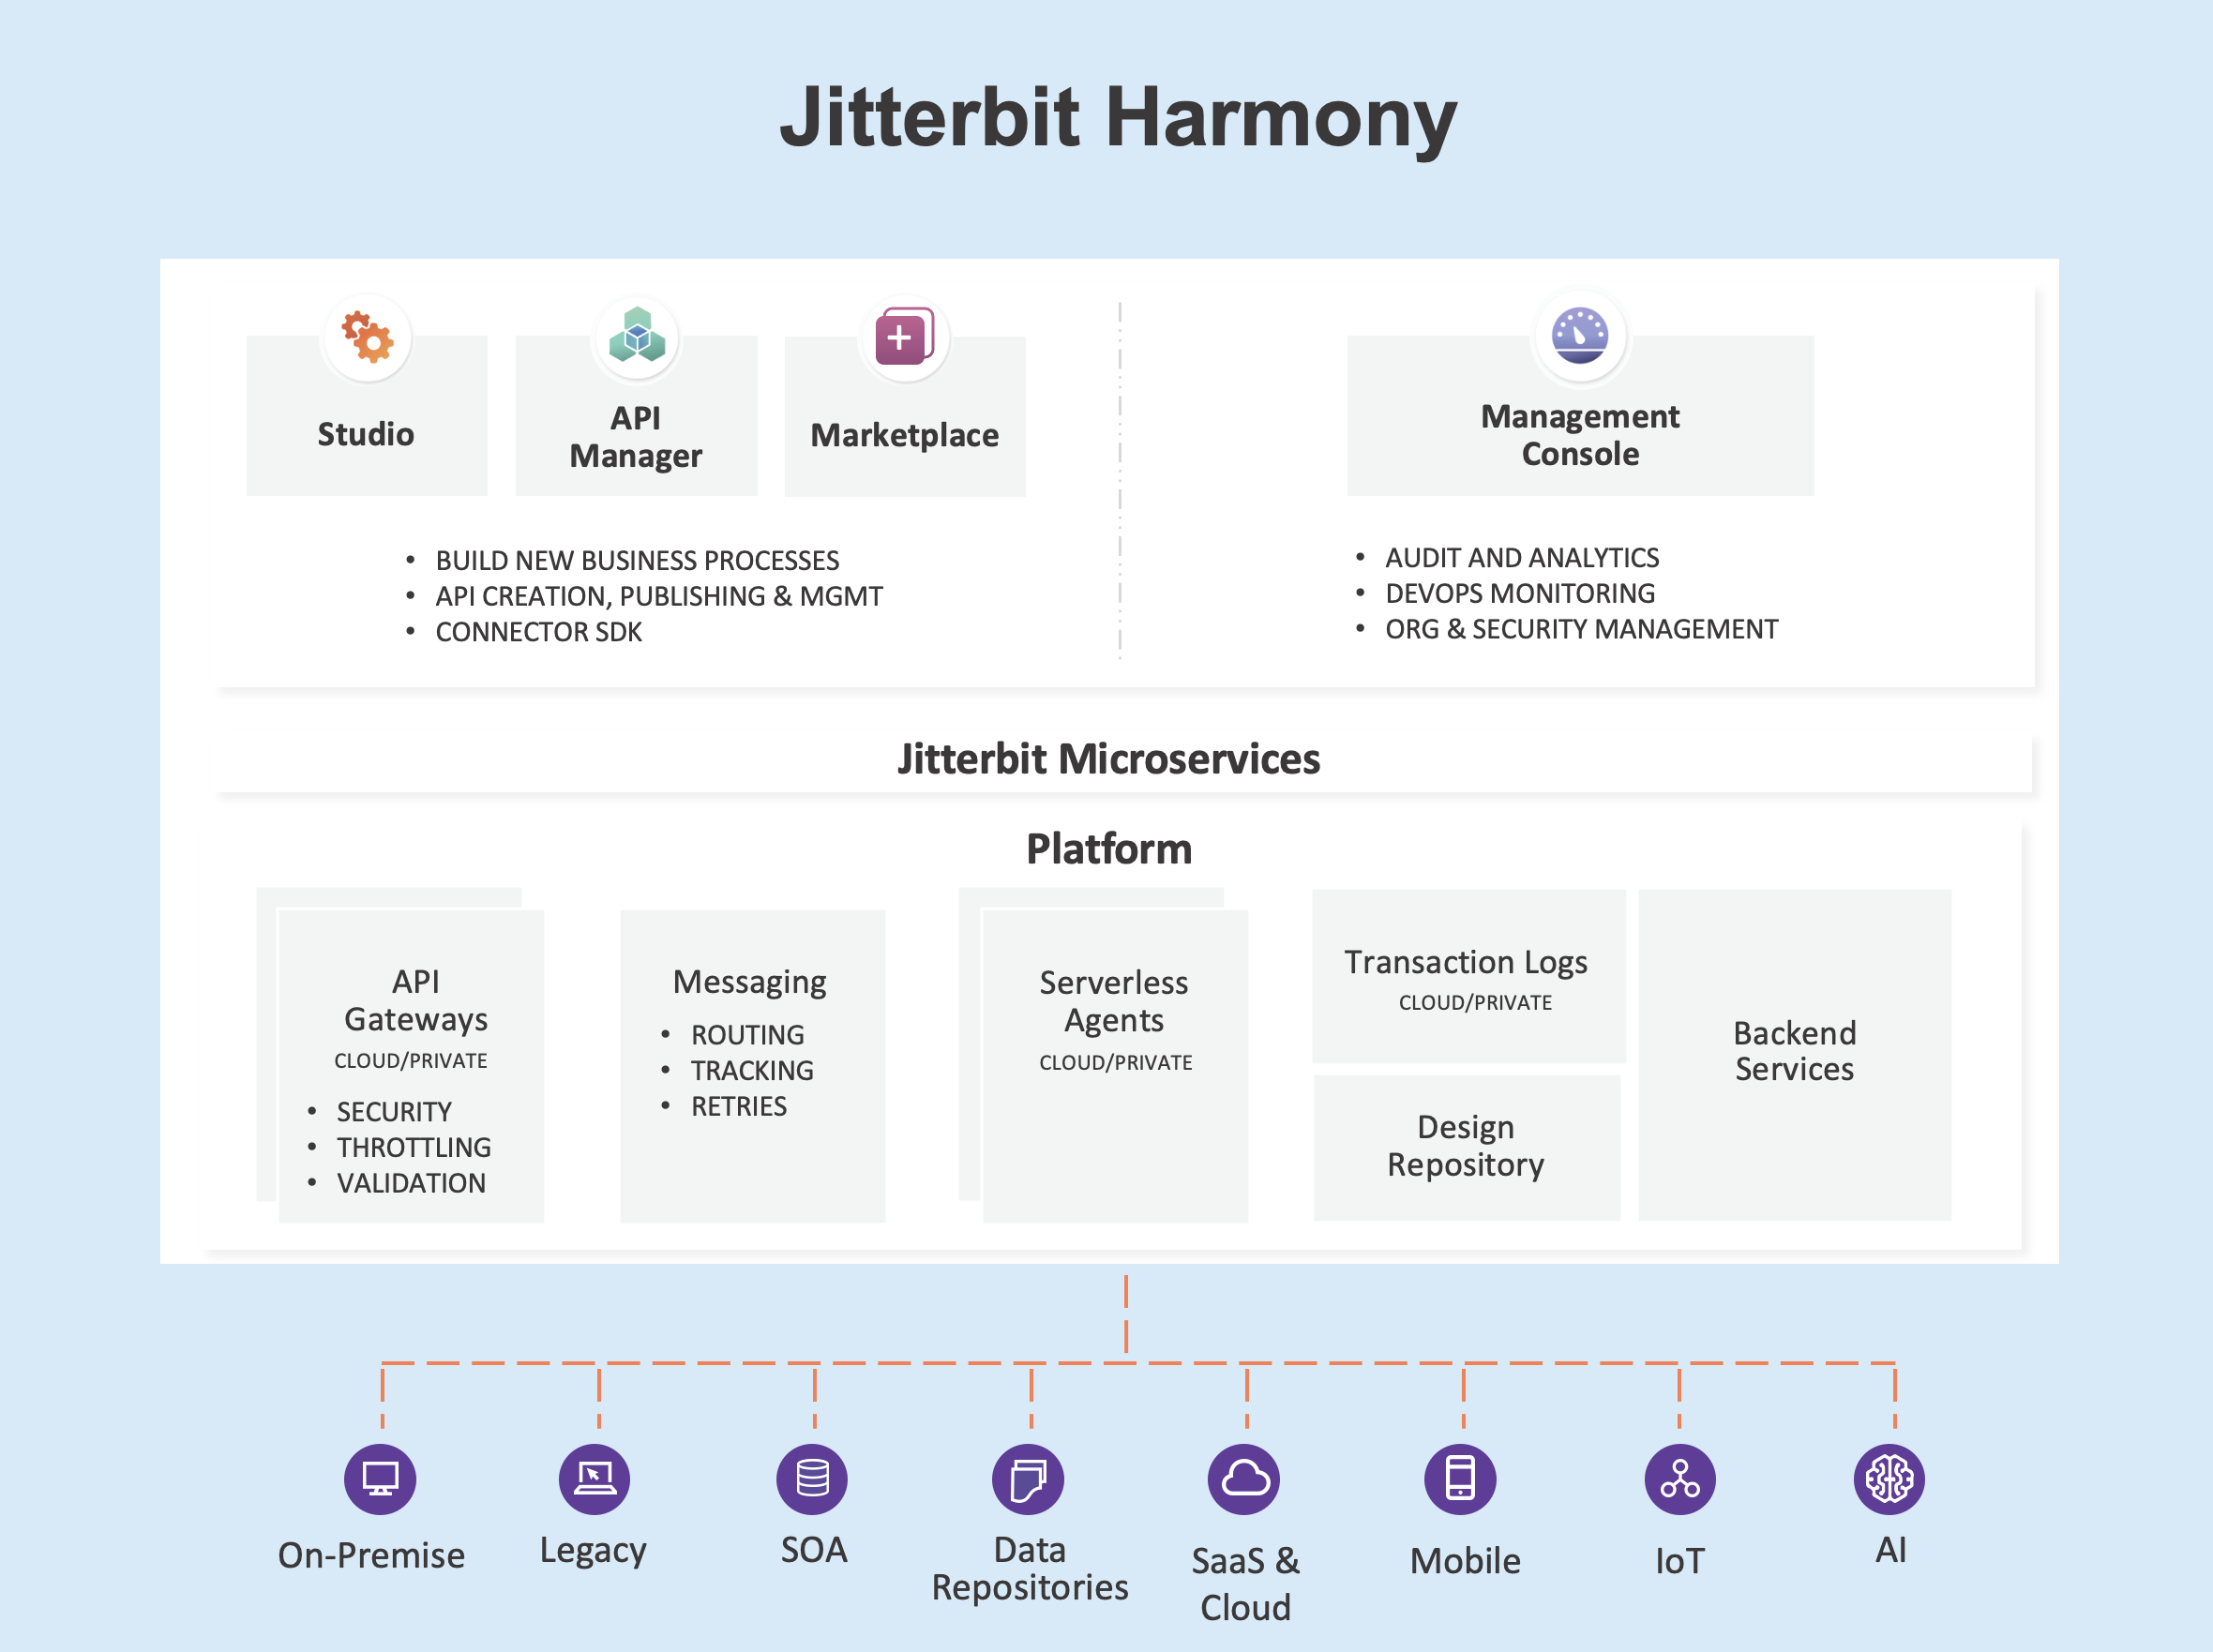 Jitterbit Security and Architecture White Paper - Jitterbit